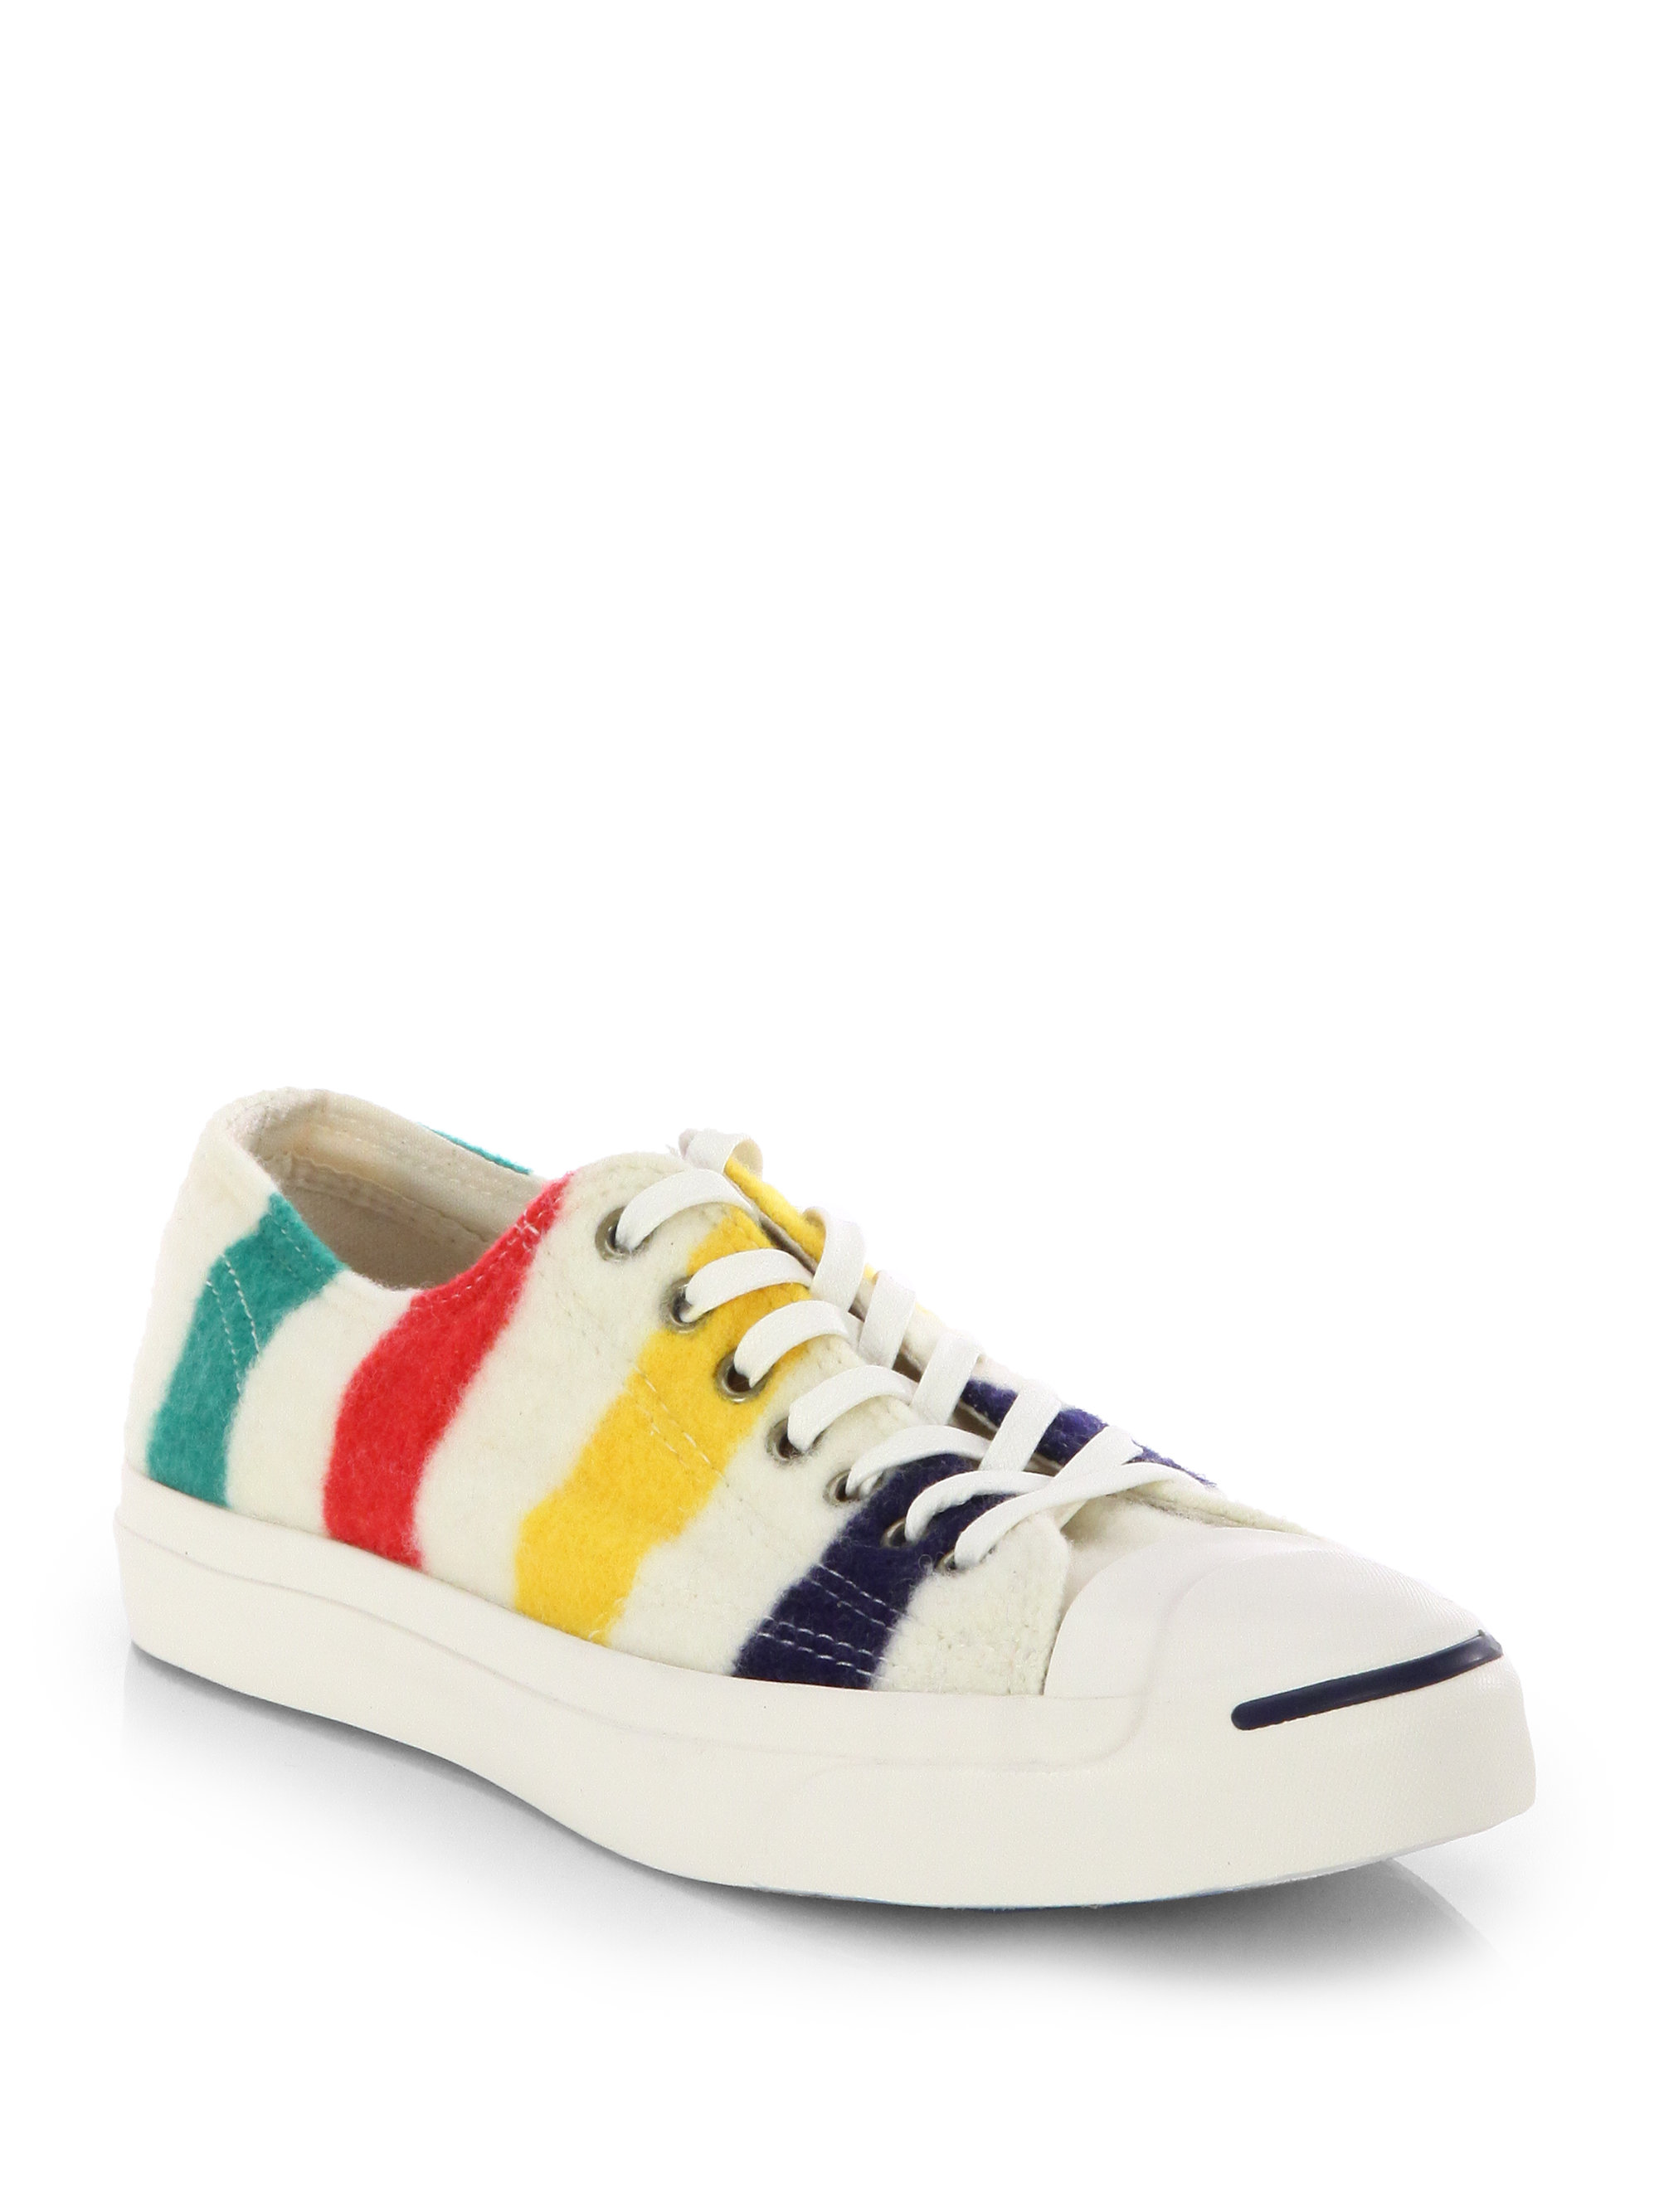 Lyst Converse Striped Wool Sneakers In White For Men